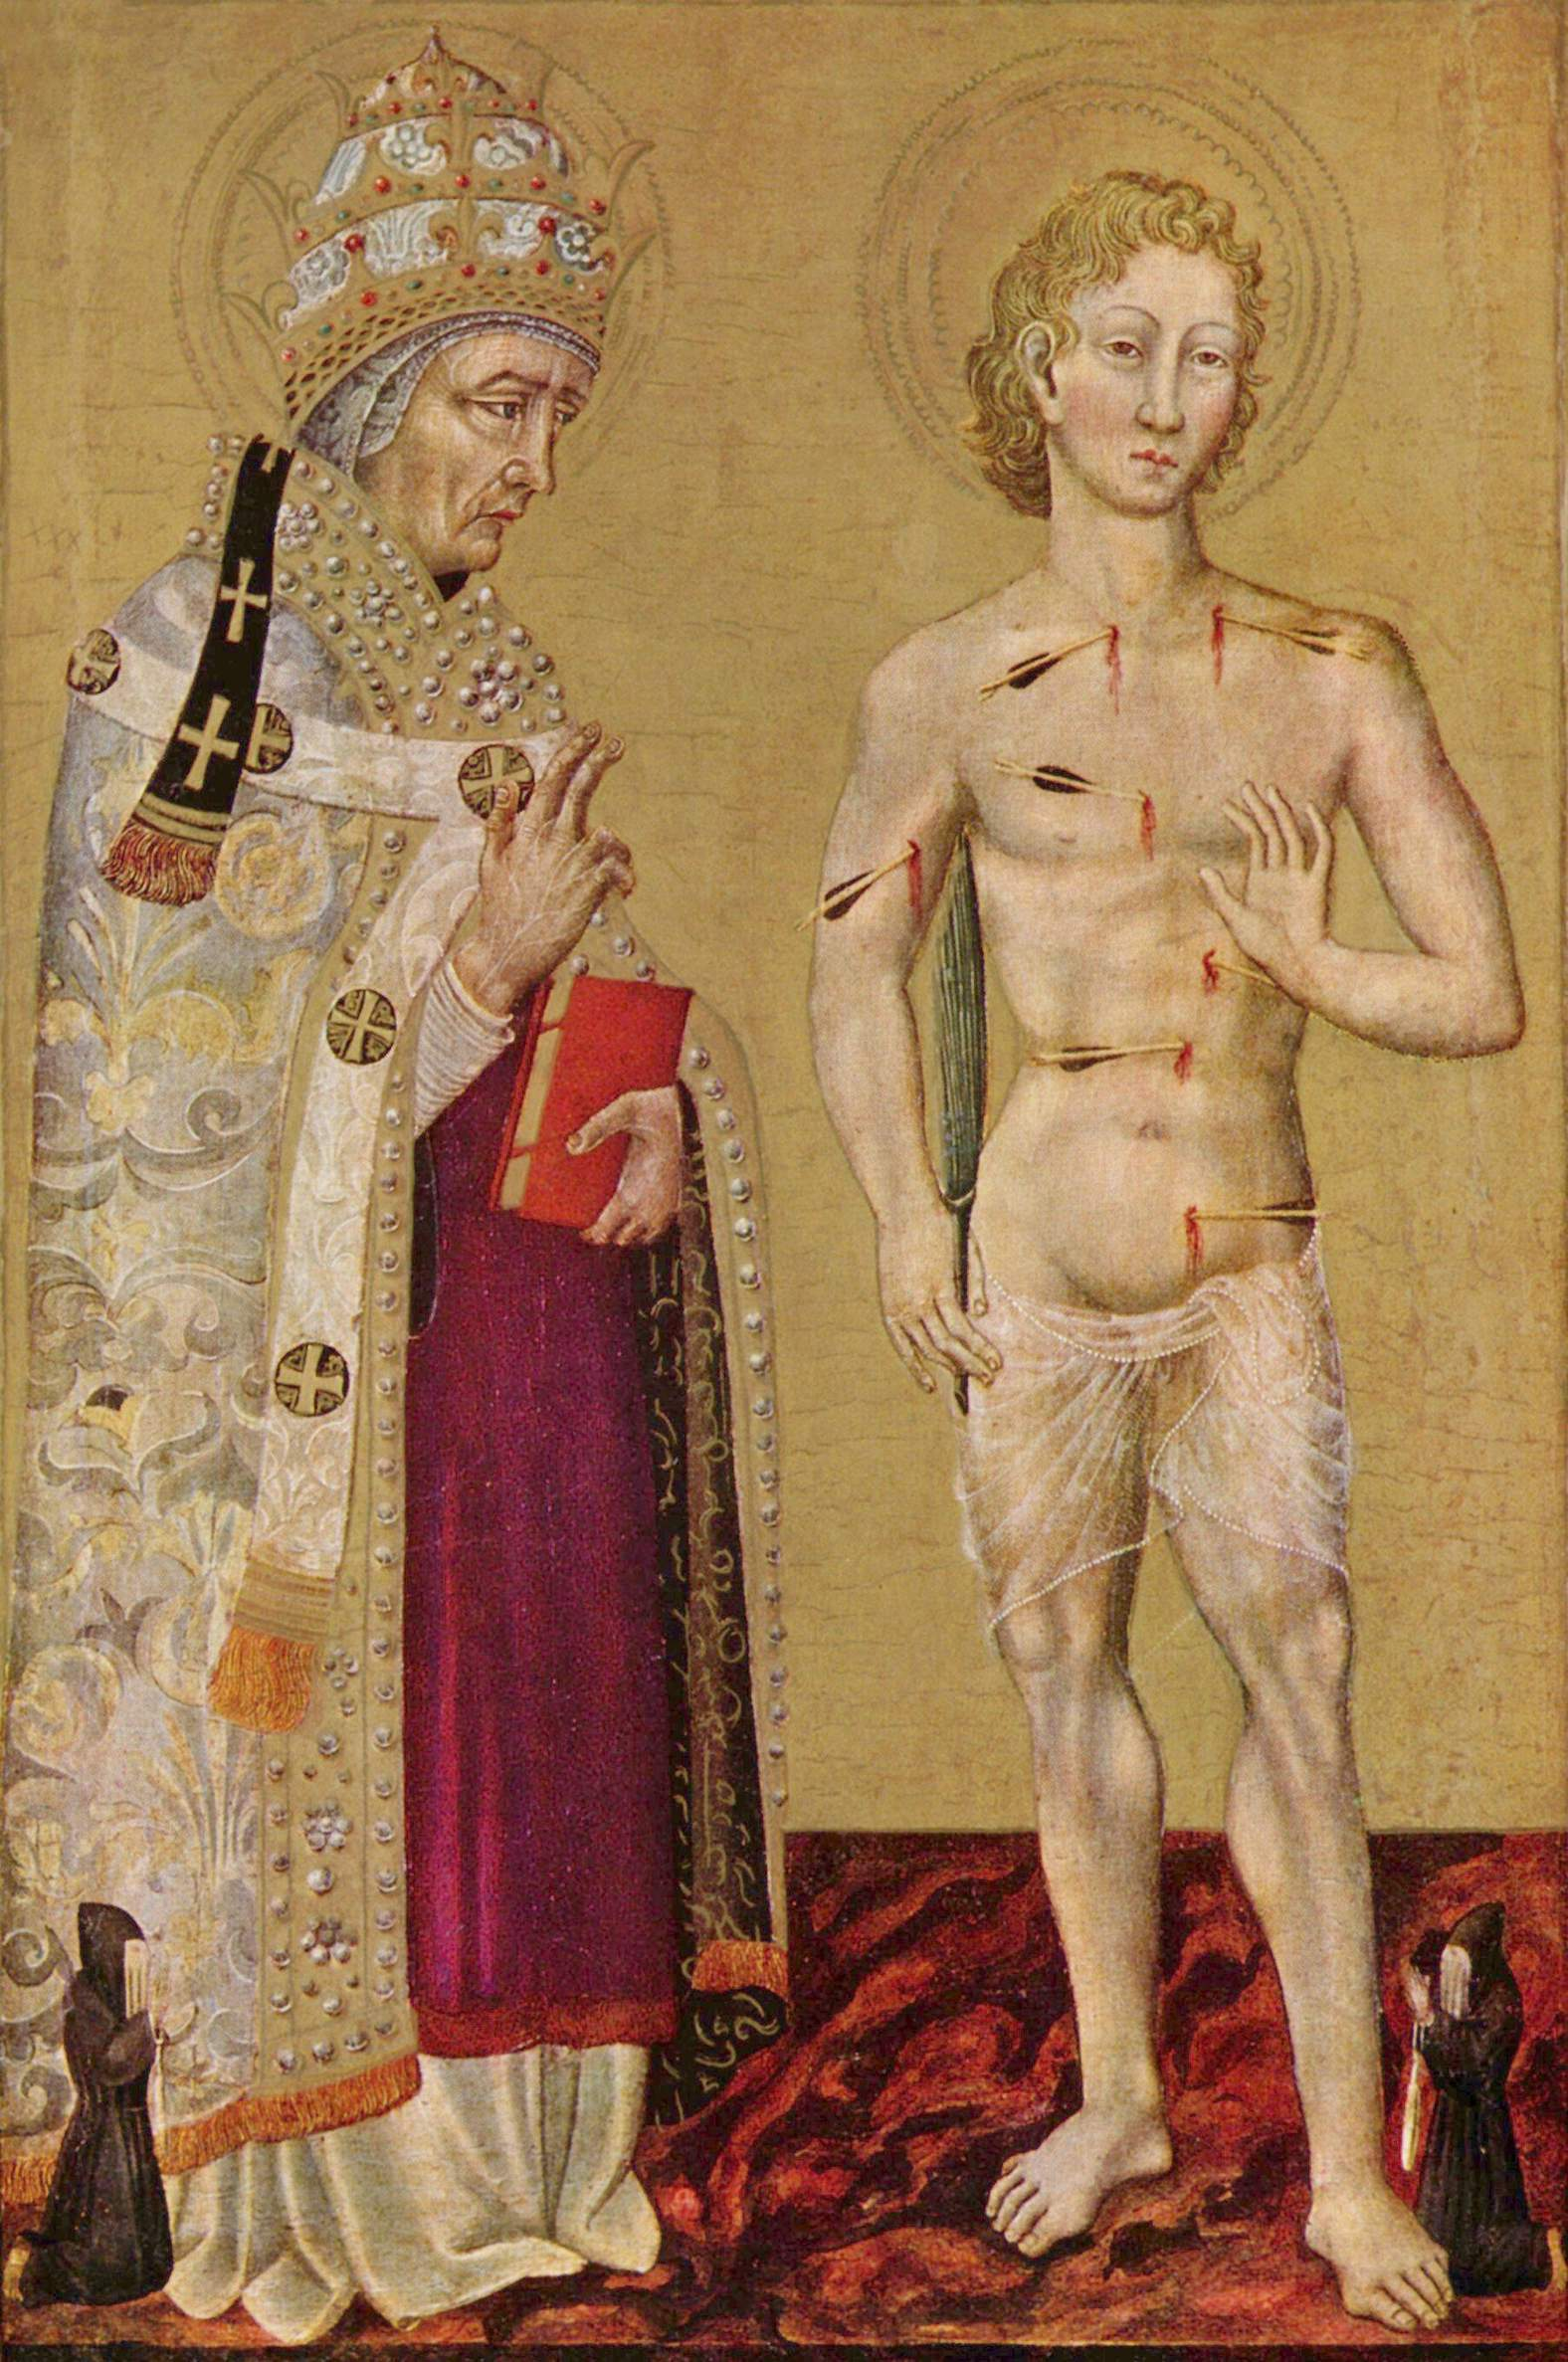 https://upload.wikimedia.org/wikipedia/commons/f/fa/Giovanni_di_Paolo_002.jpg